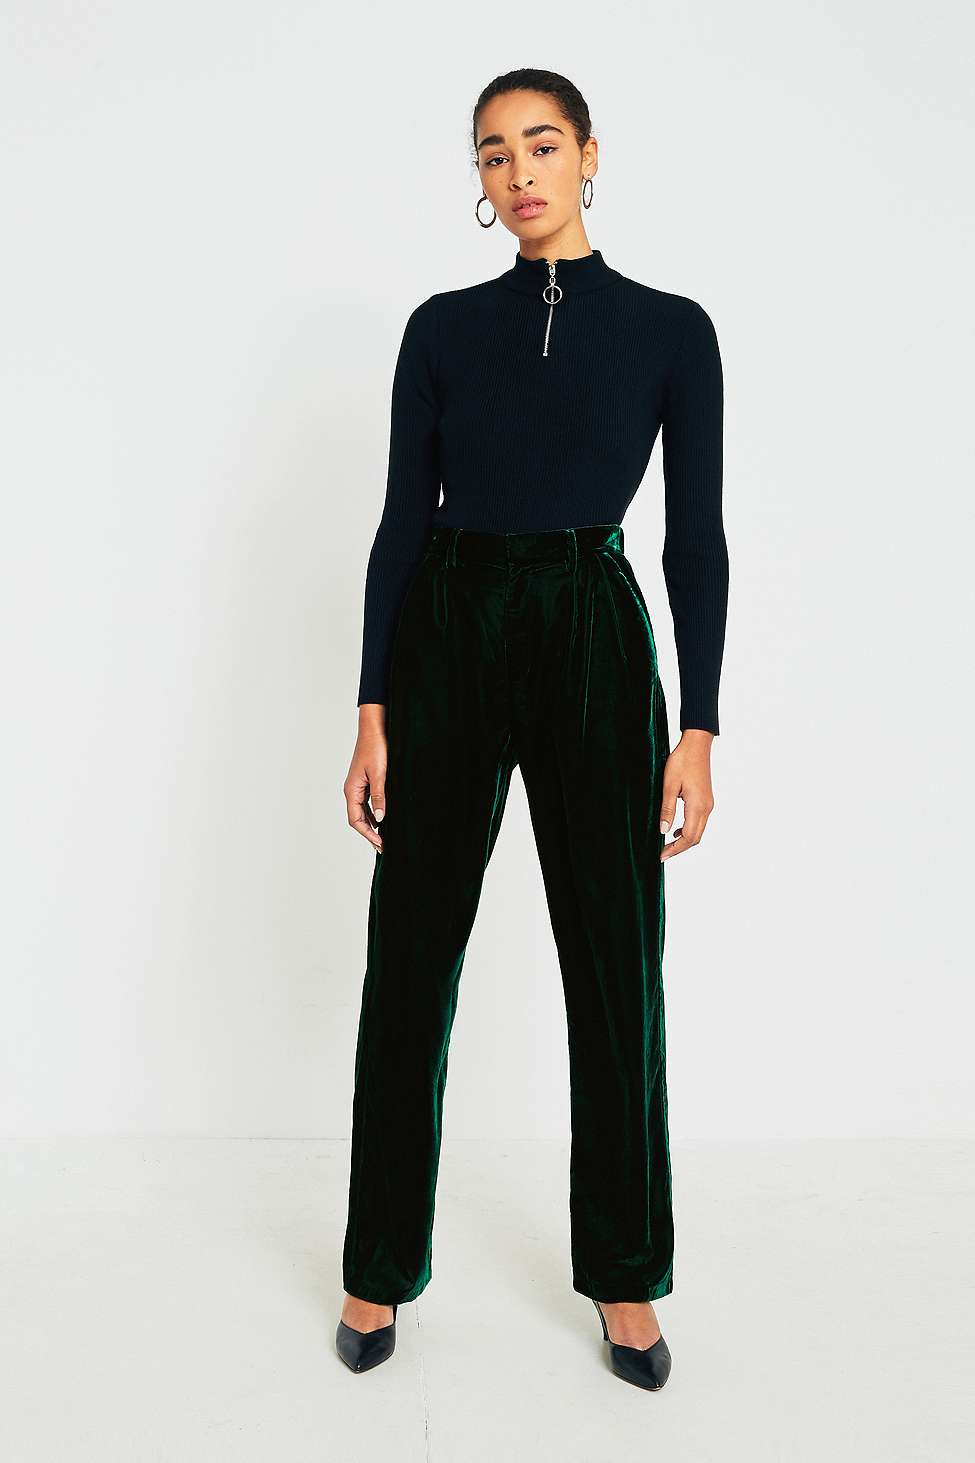 Light Before Dark Puddle Green Velvet Trousers, Green